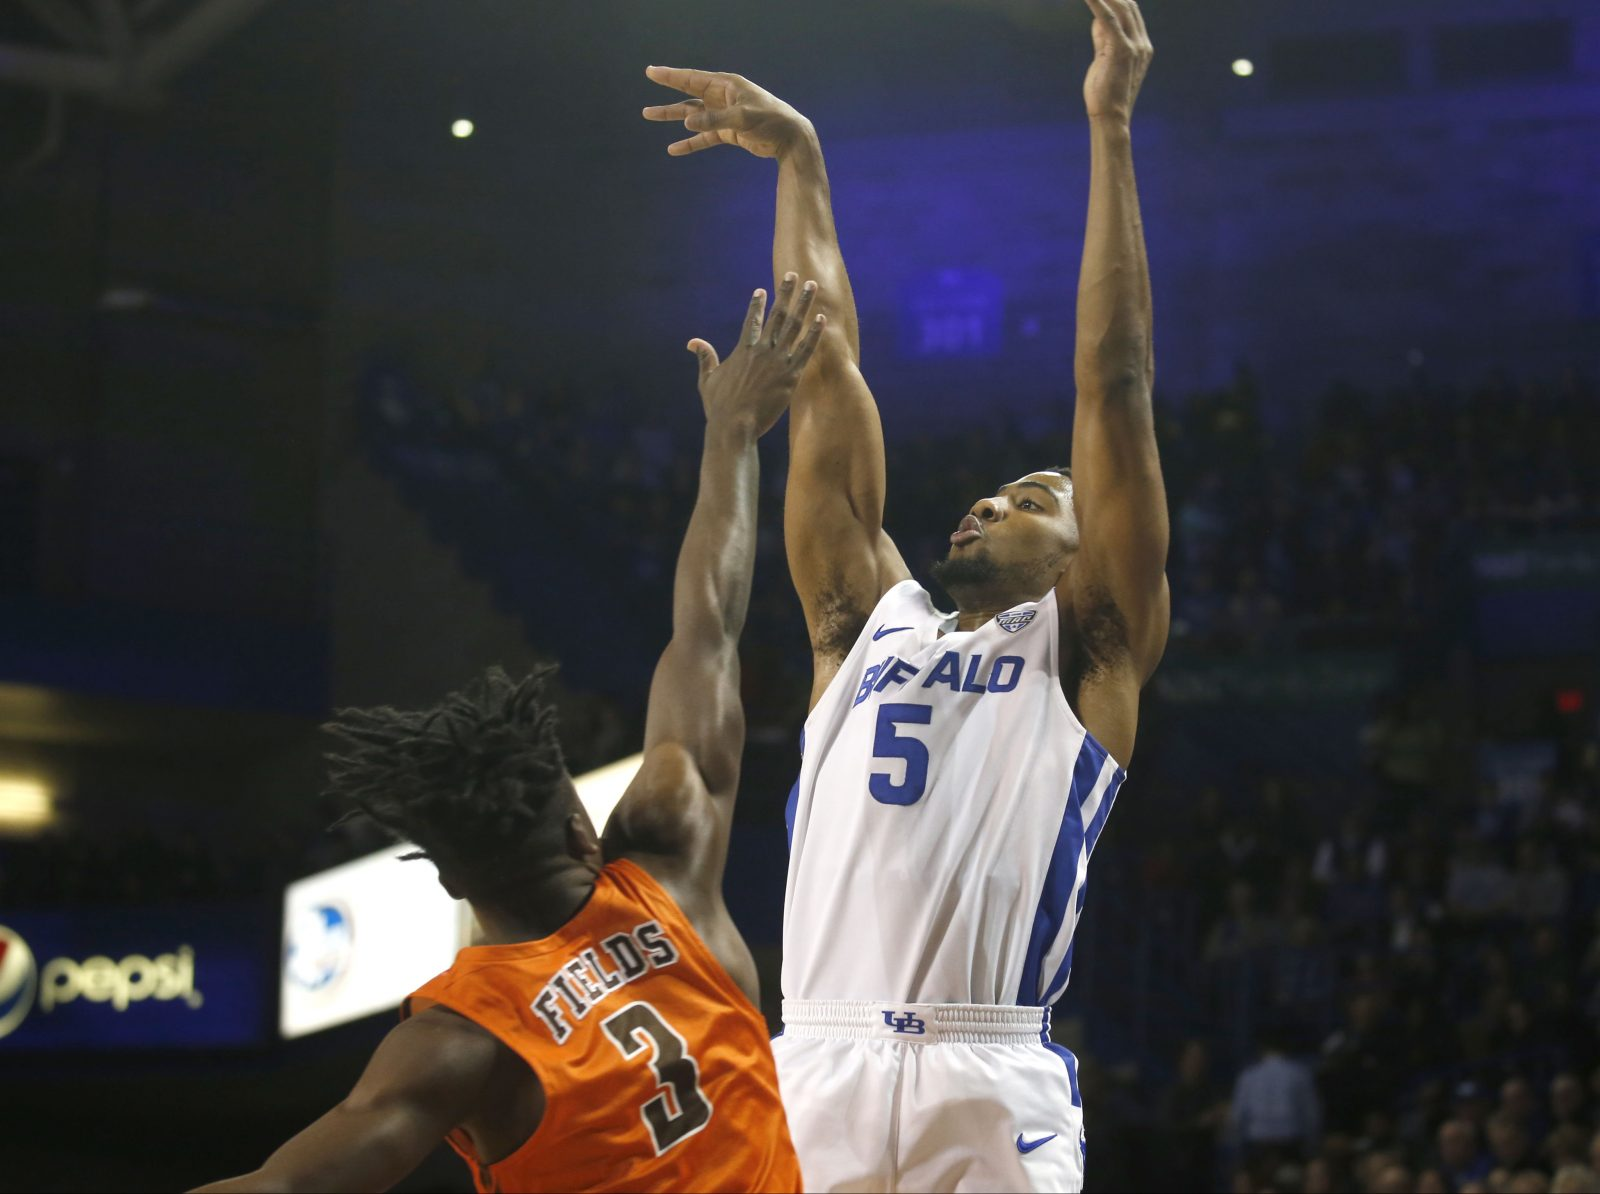 UB mens basketball moves to No. 15 in Associated Press rankings